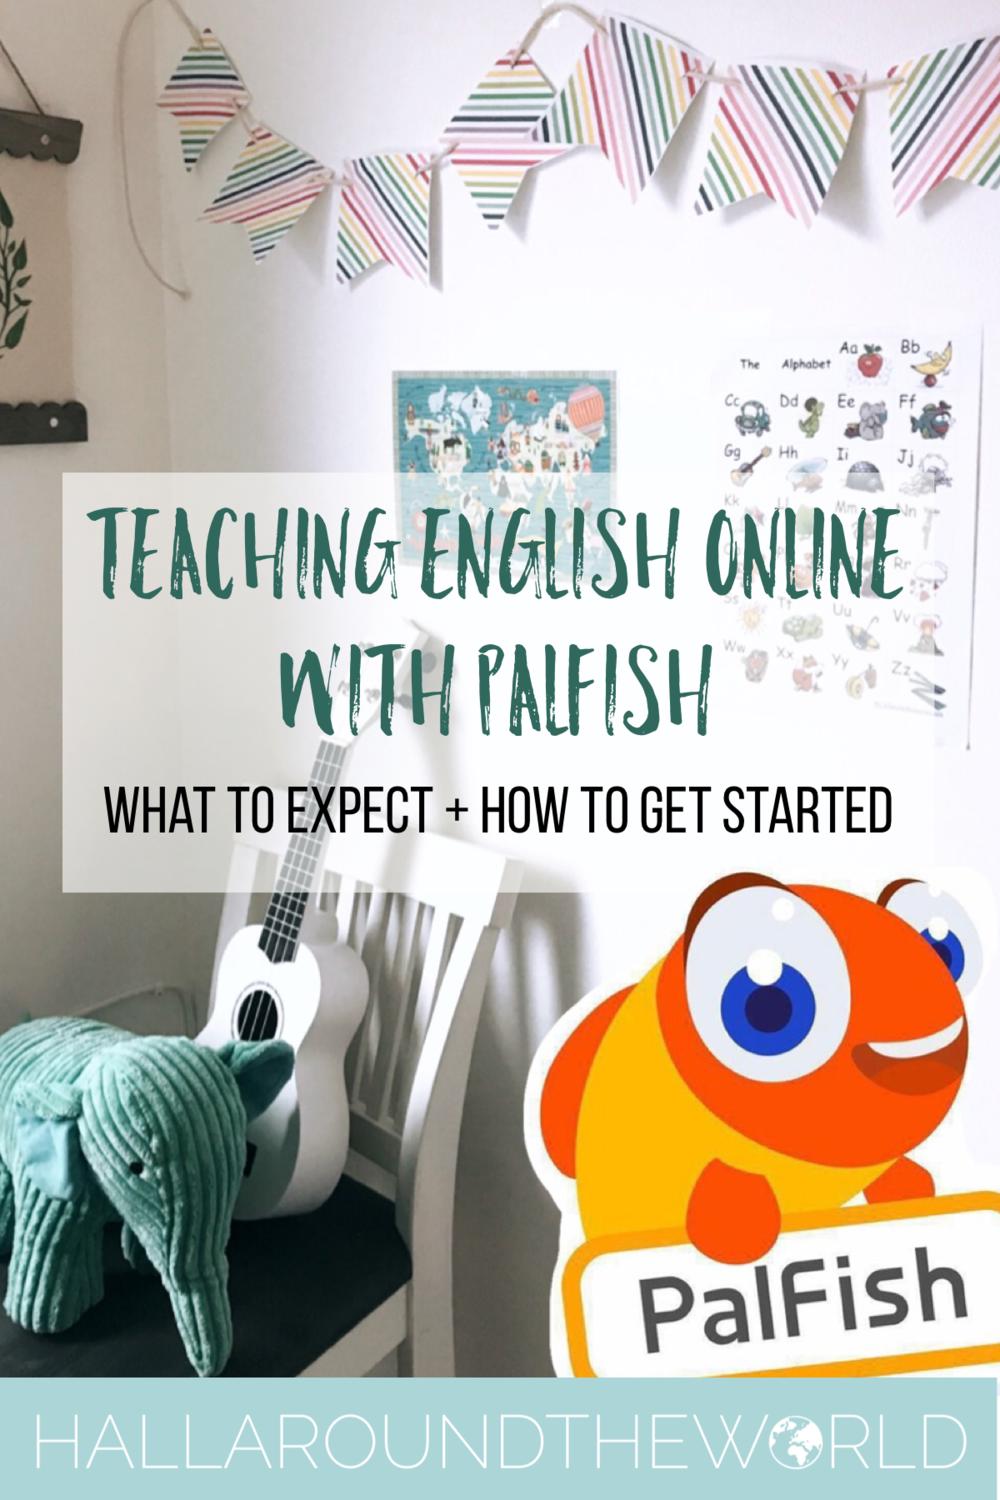 Teaching English Online with PalFish - What's Required + How to Get Started | HallAroundtheWorld